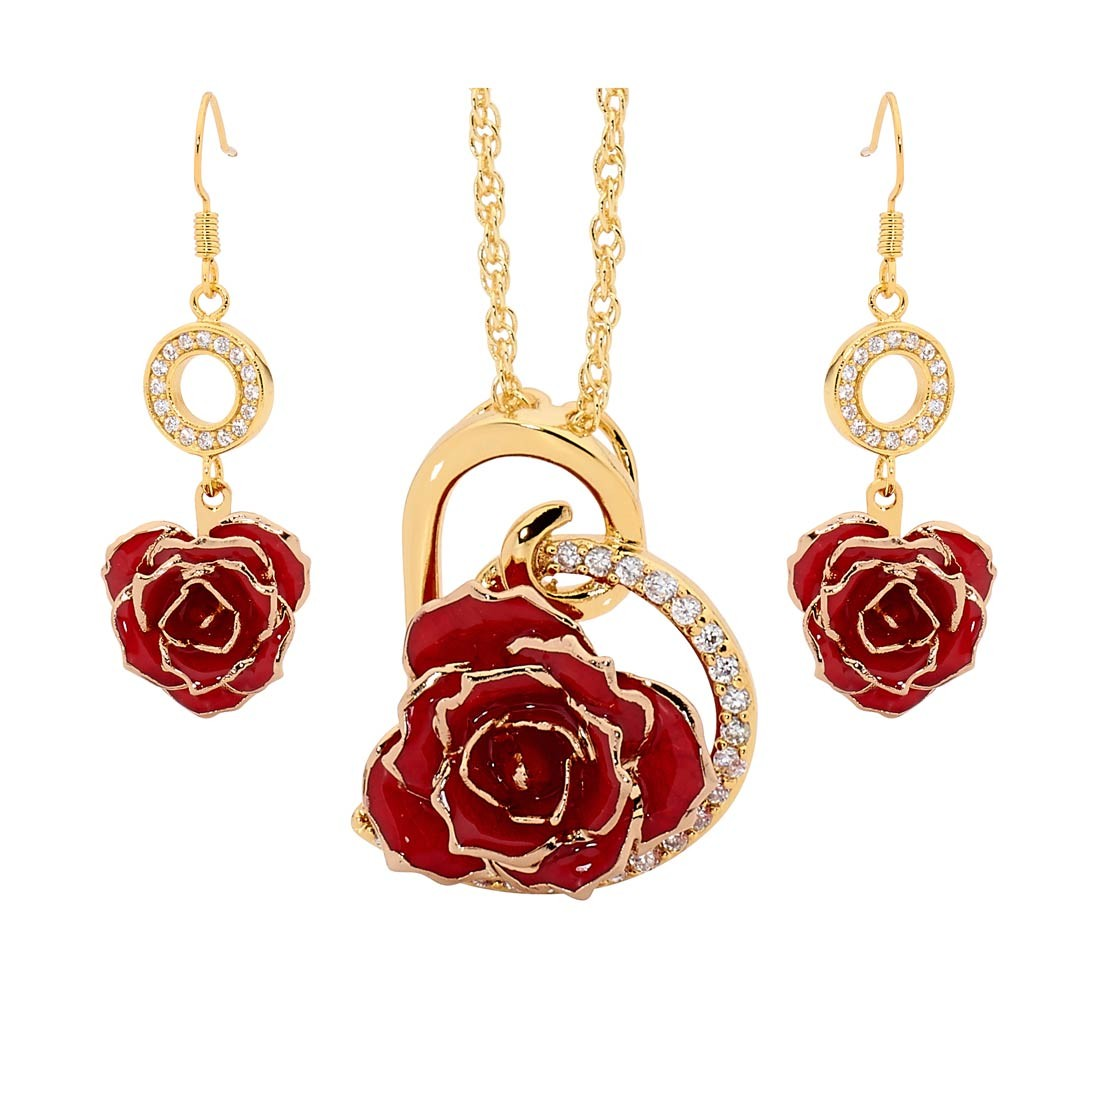 fashion brass earrings medium cross img roses brands gold on watches gabbana clip jewelry red shop dolce